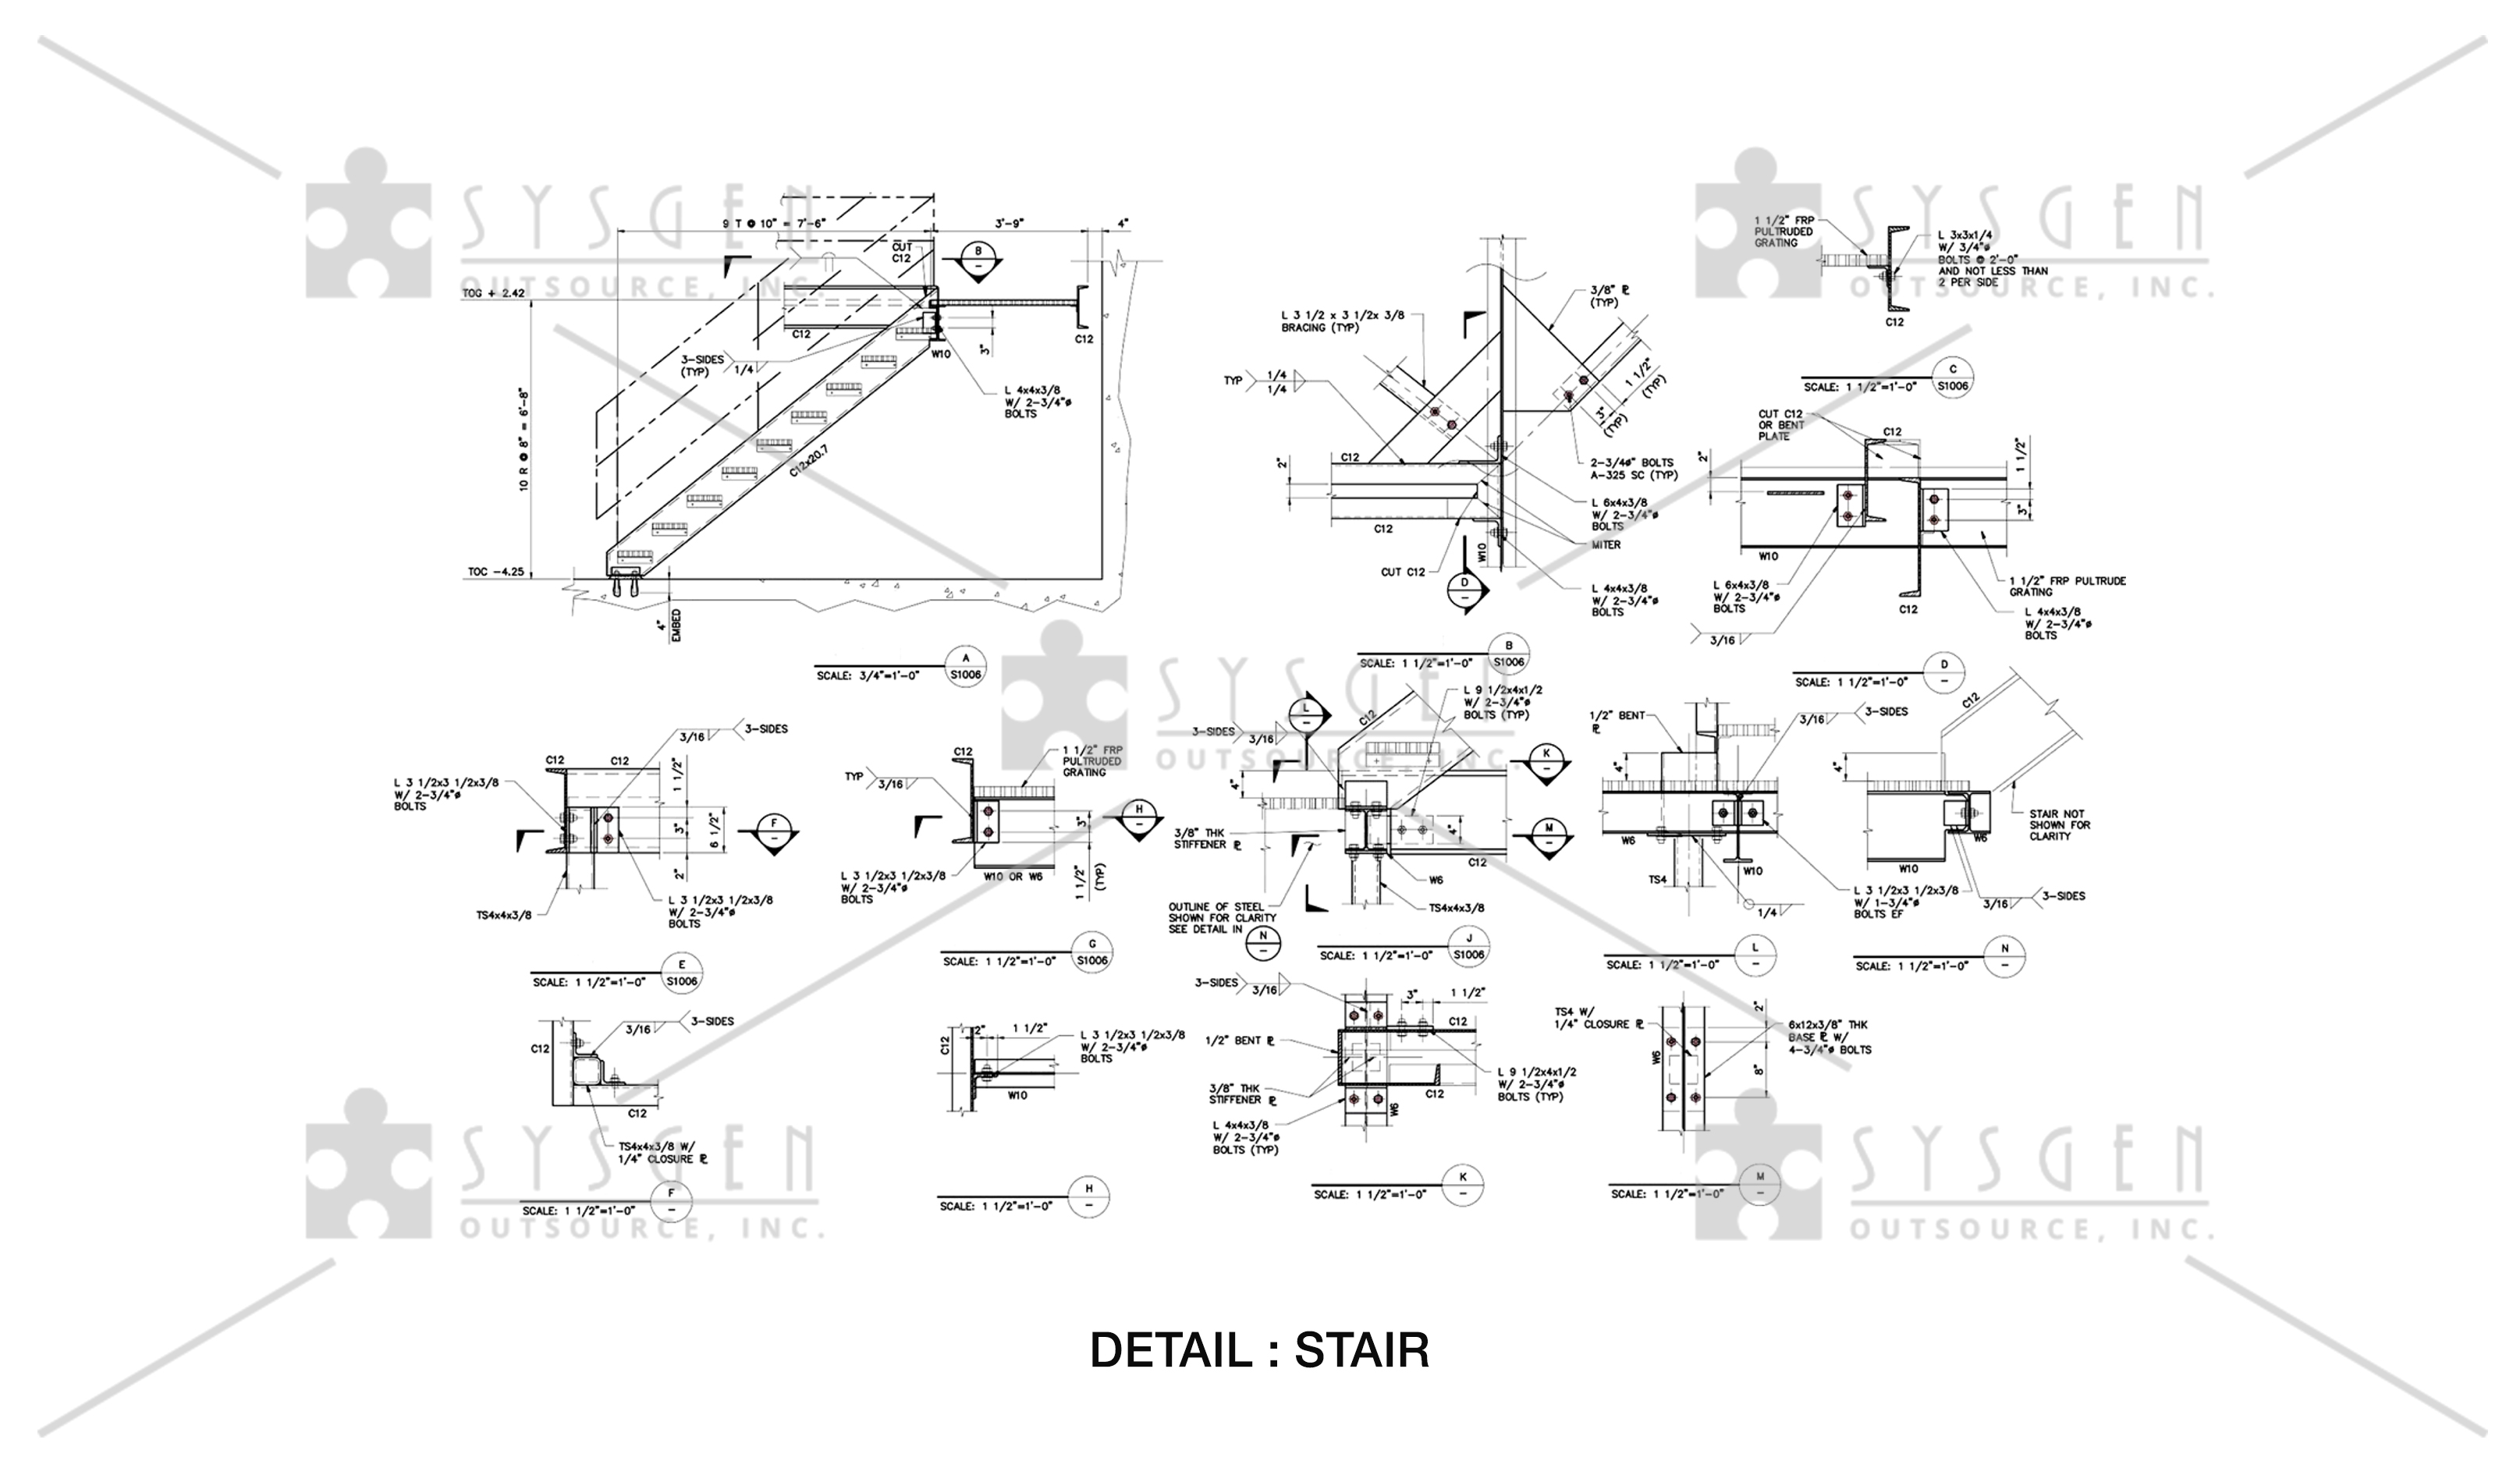 sysgen-outsource-cad-outsourcing-services-engineering-structurals5